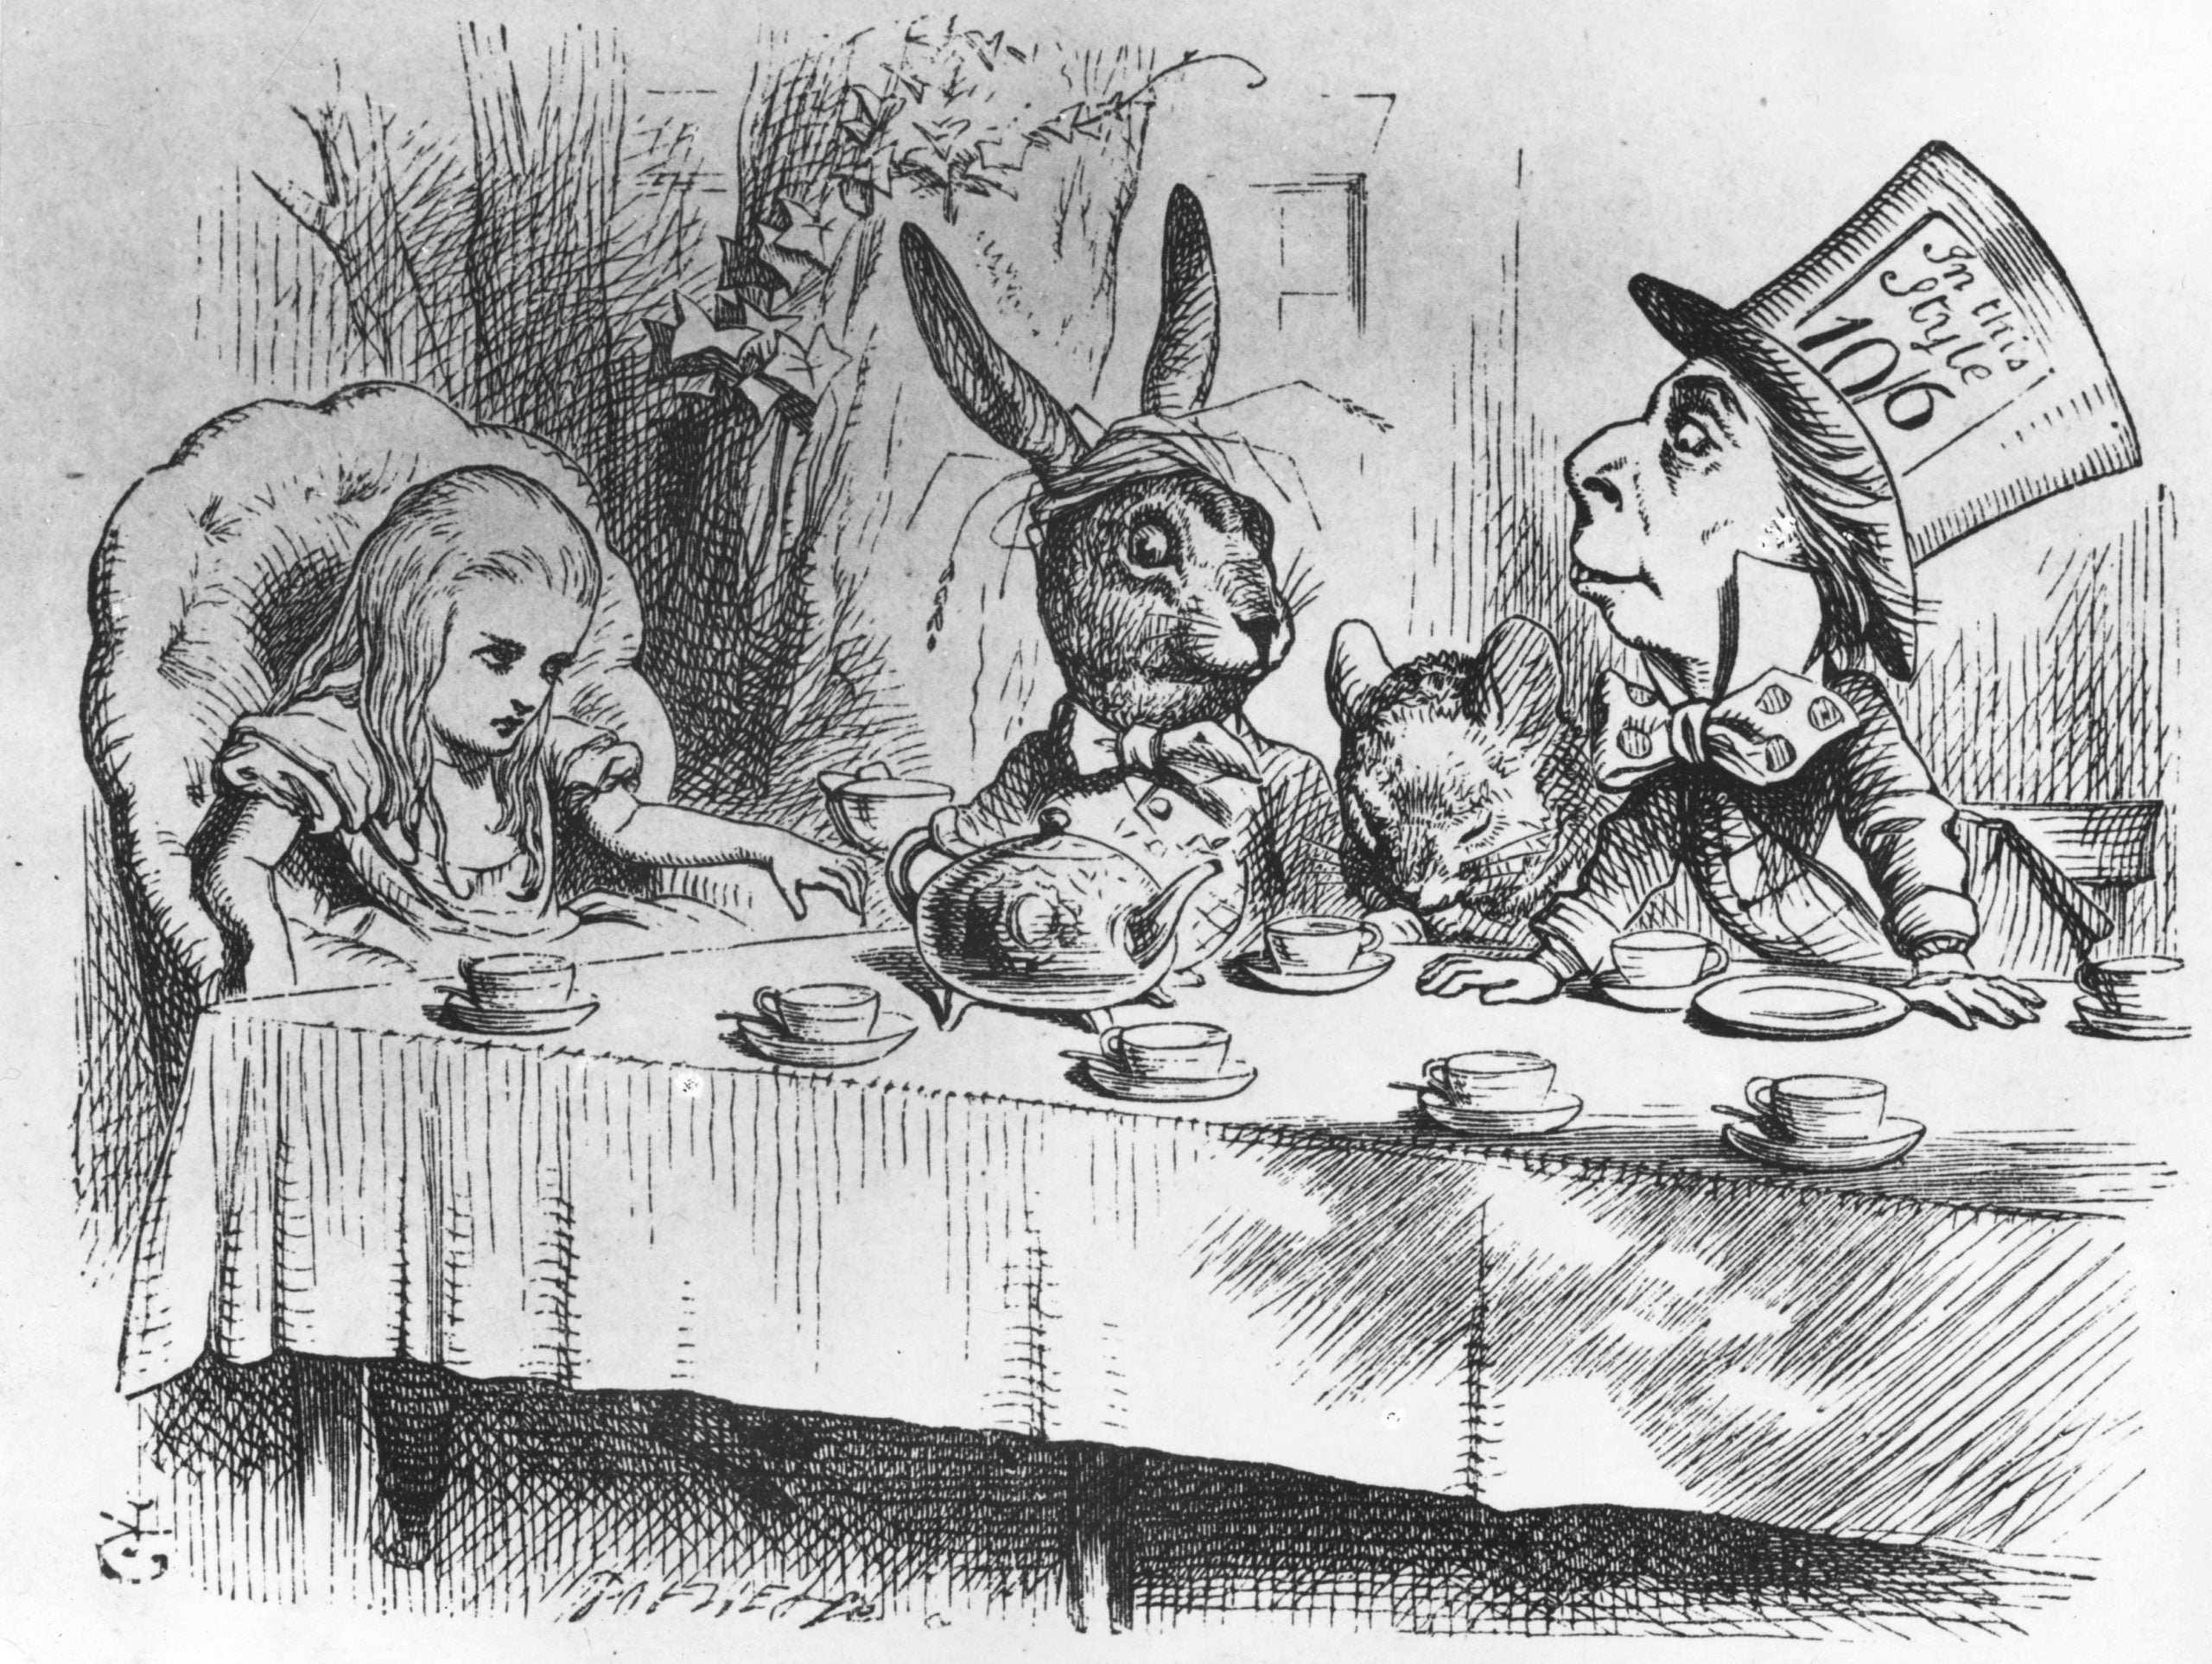 From the NS archive: The upside-down world of Lewis Carroll